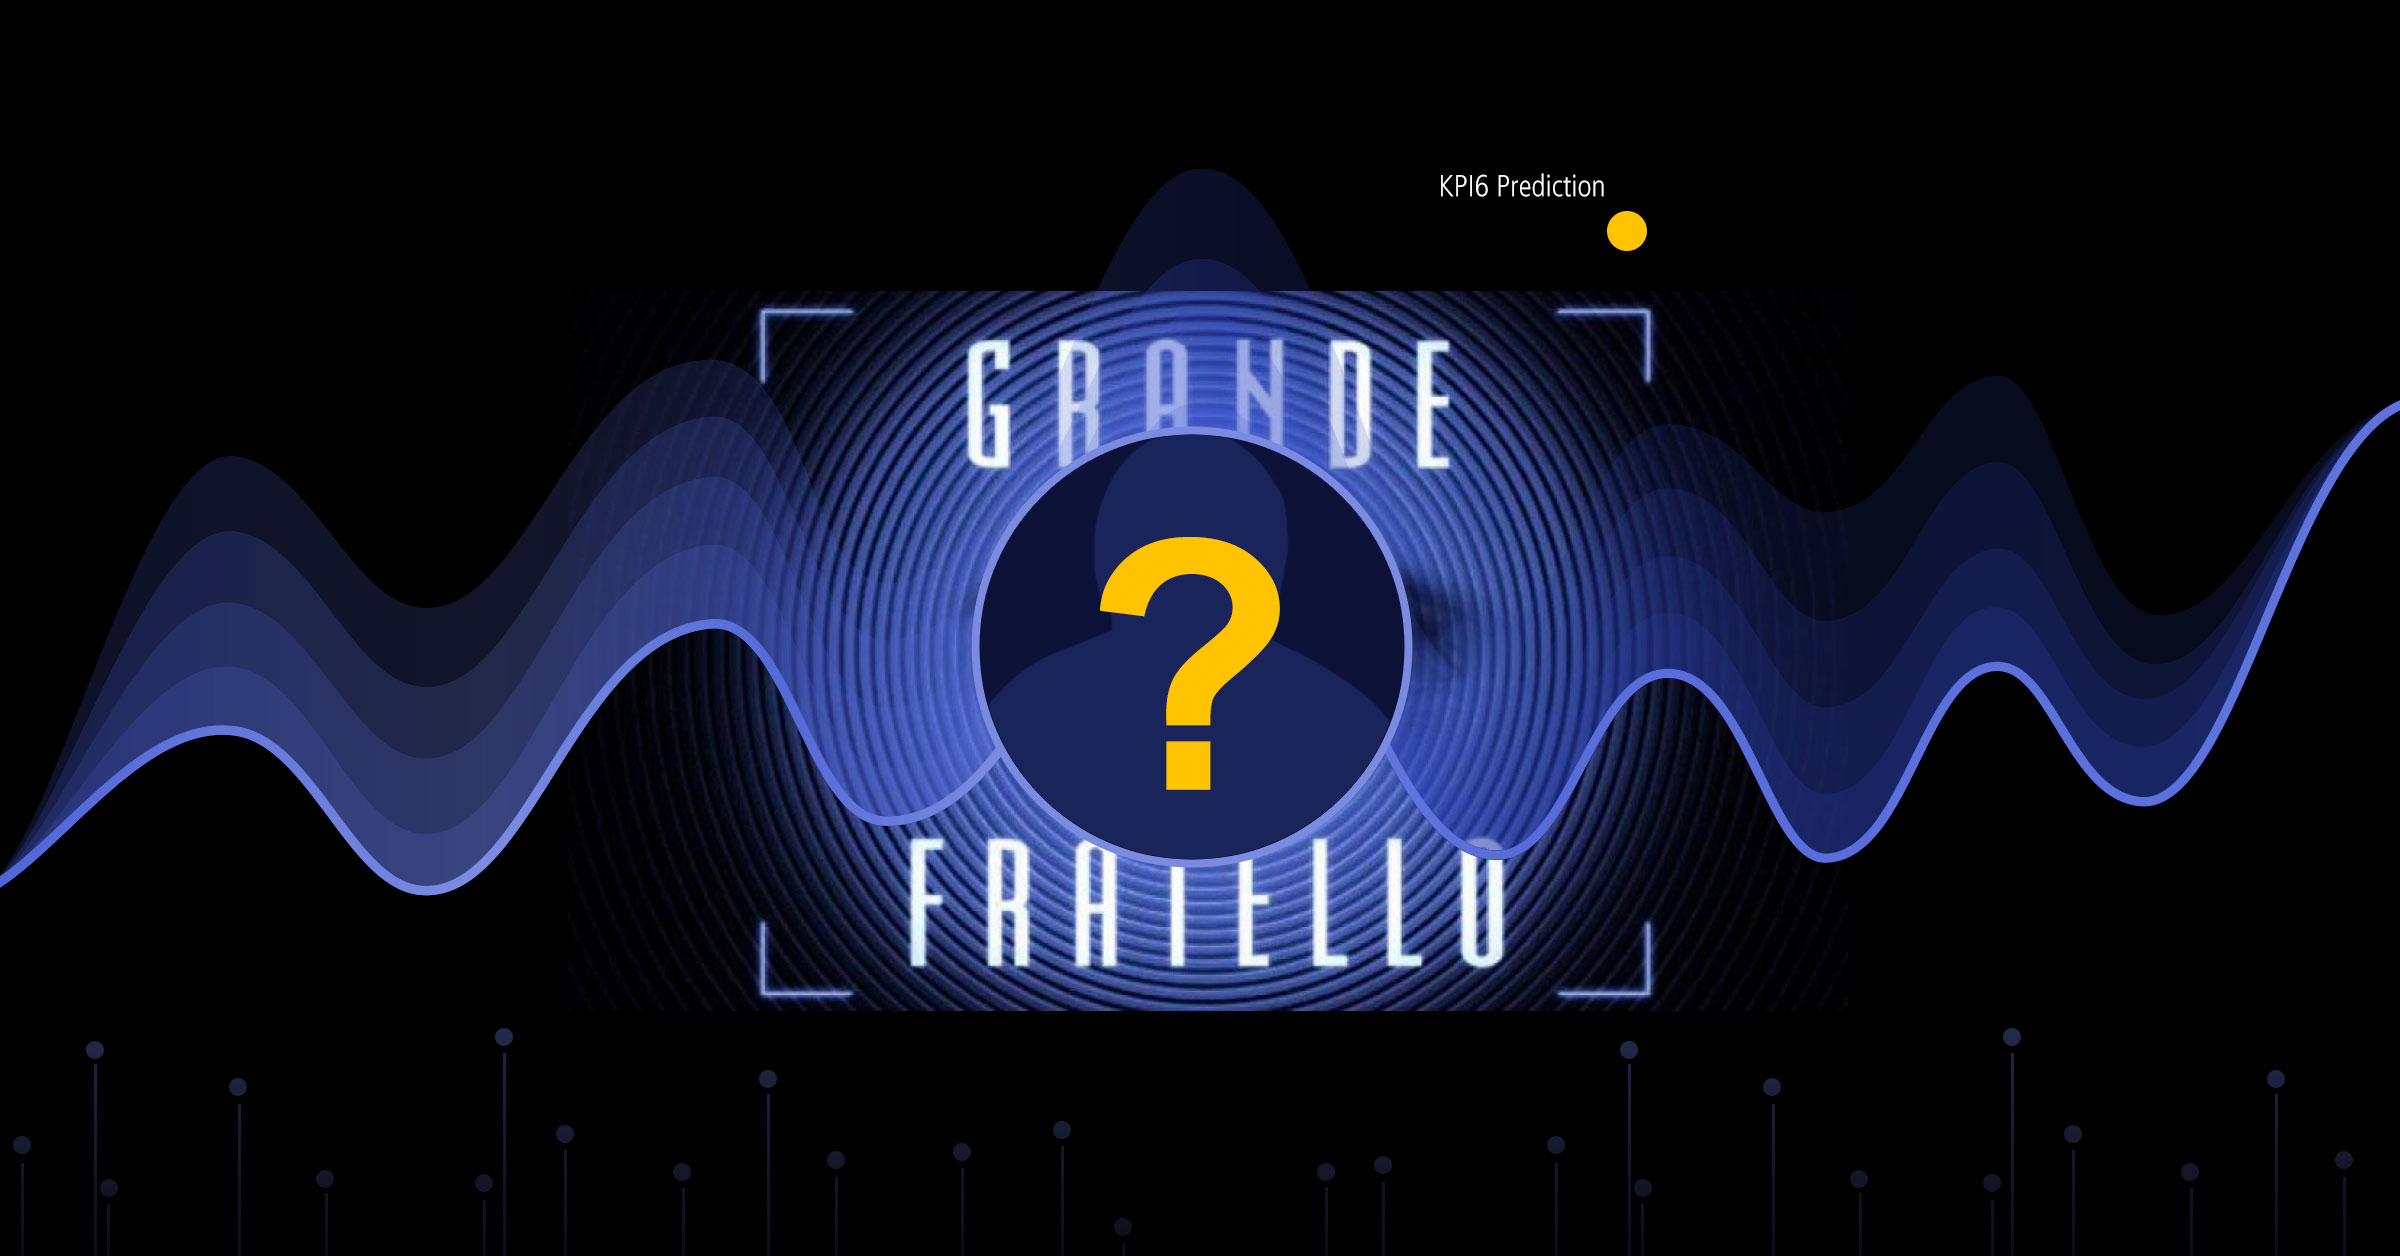 The prediction of GFvip winner according to social network